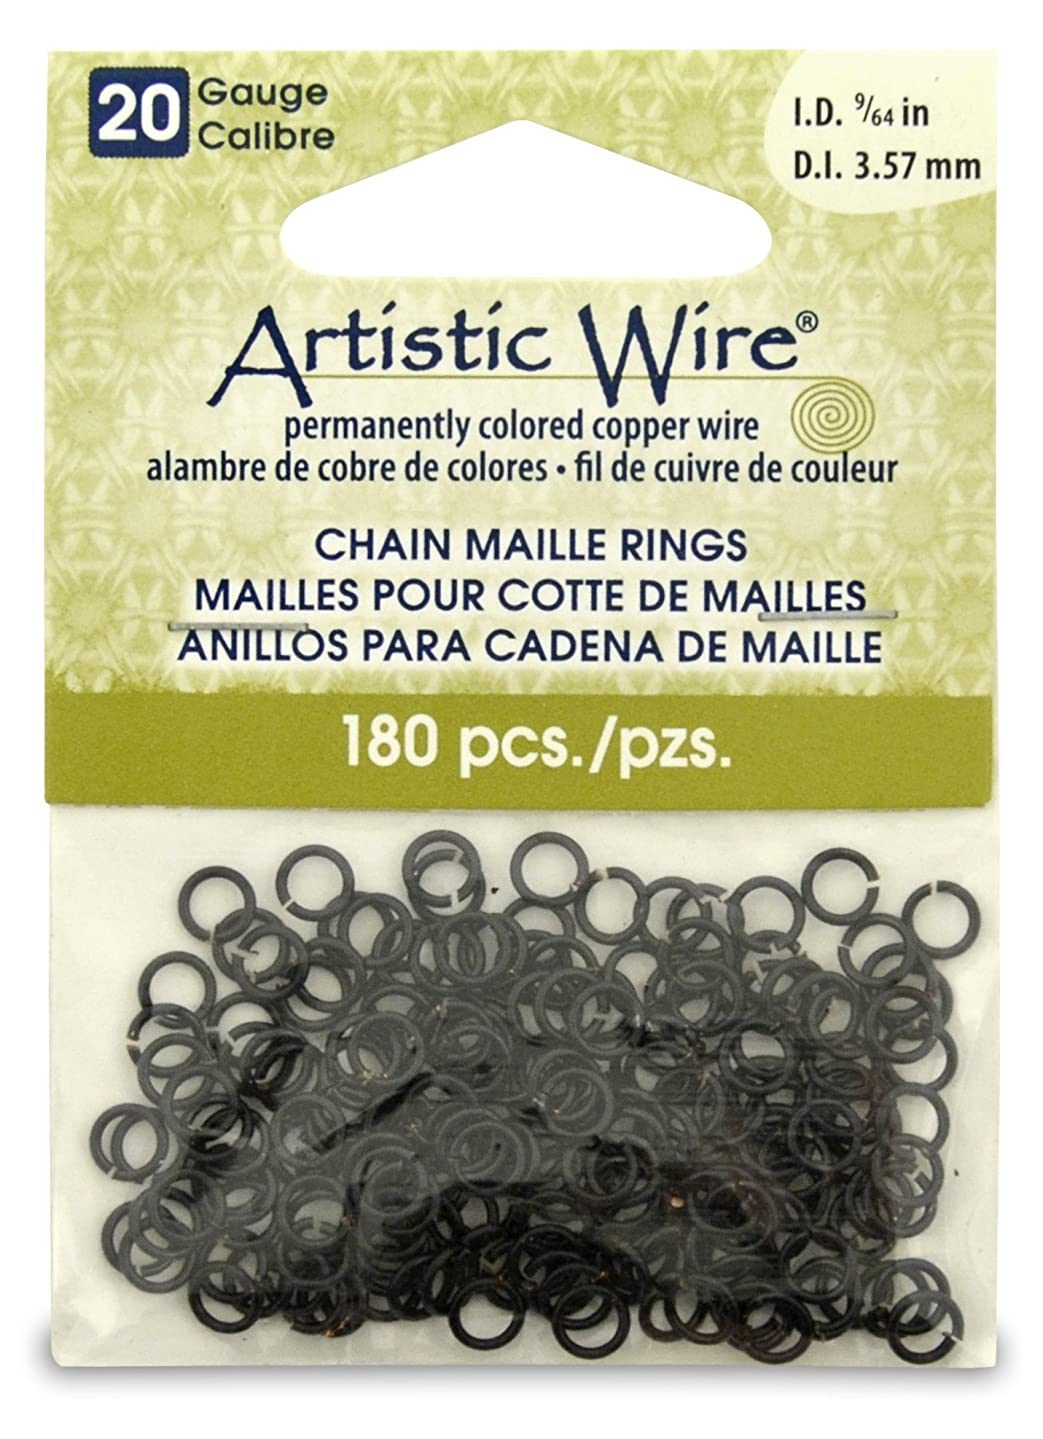 Artistic Wire 20-Gauge Black Chain Maille Rings, 9/64-Inch Diameter, 180-Pieces